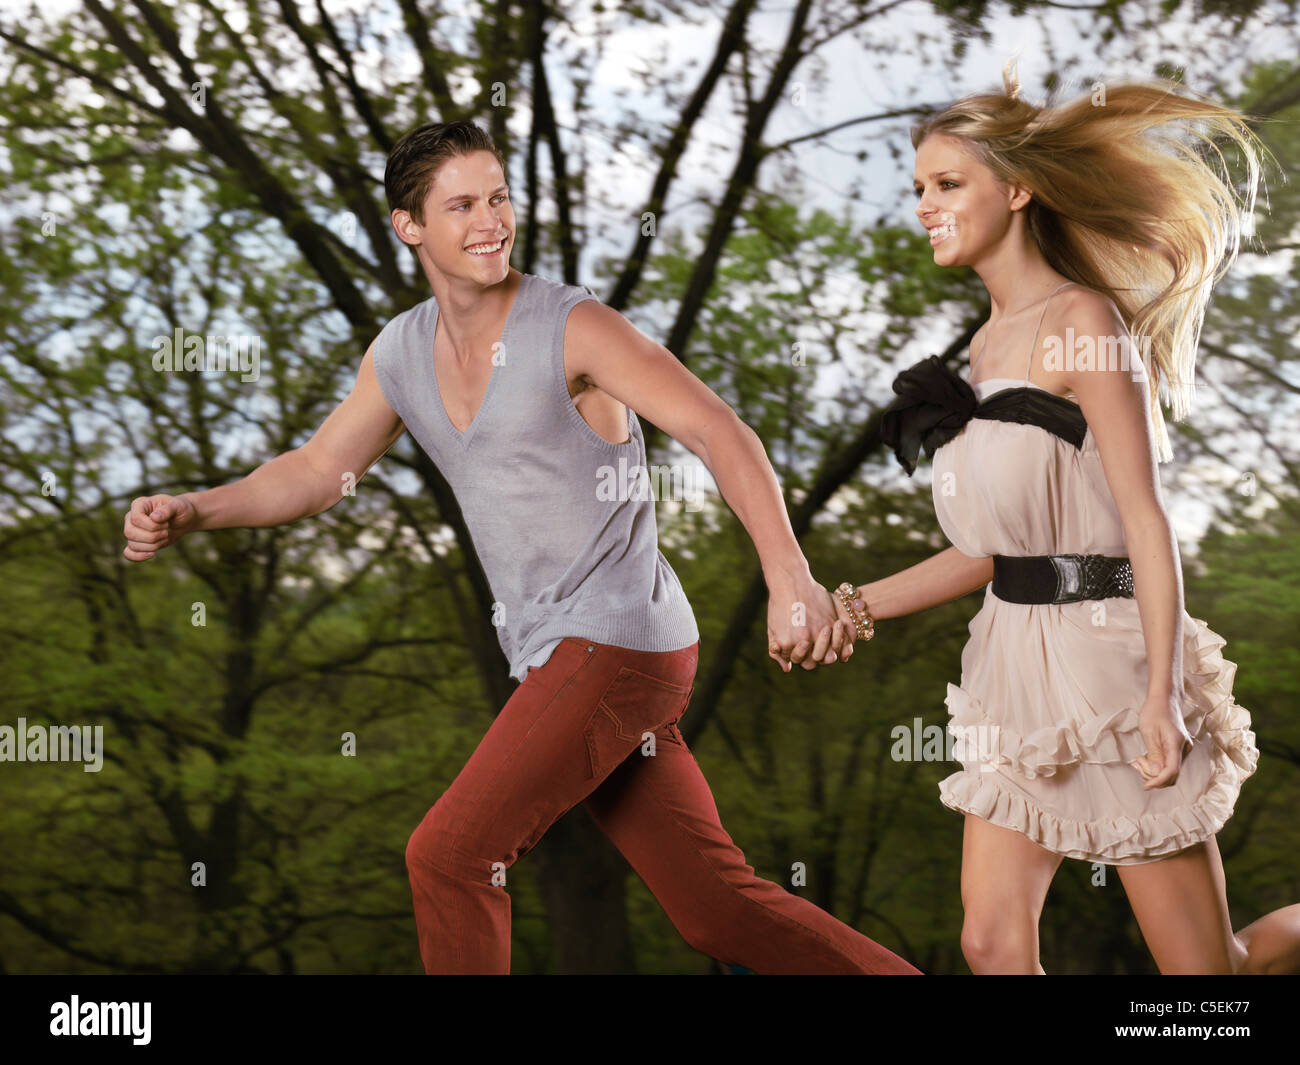 Young happy romantic couple running together holding their hands - Stock Image